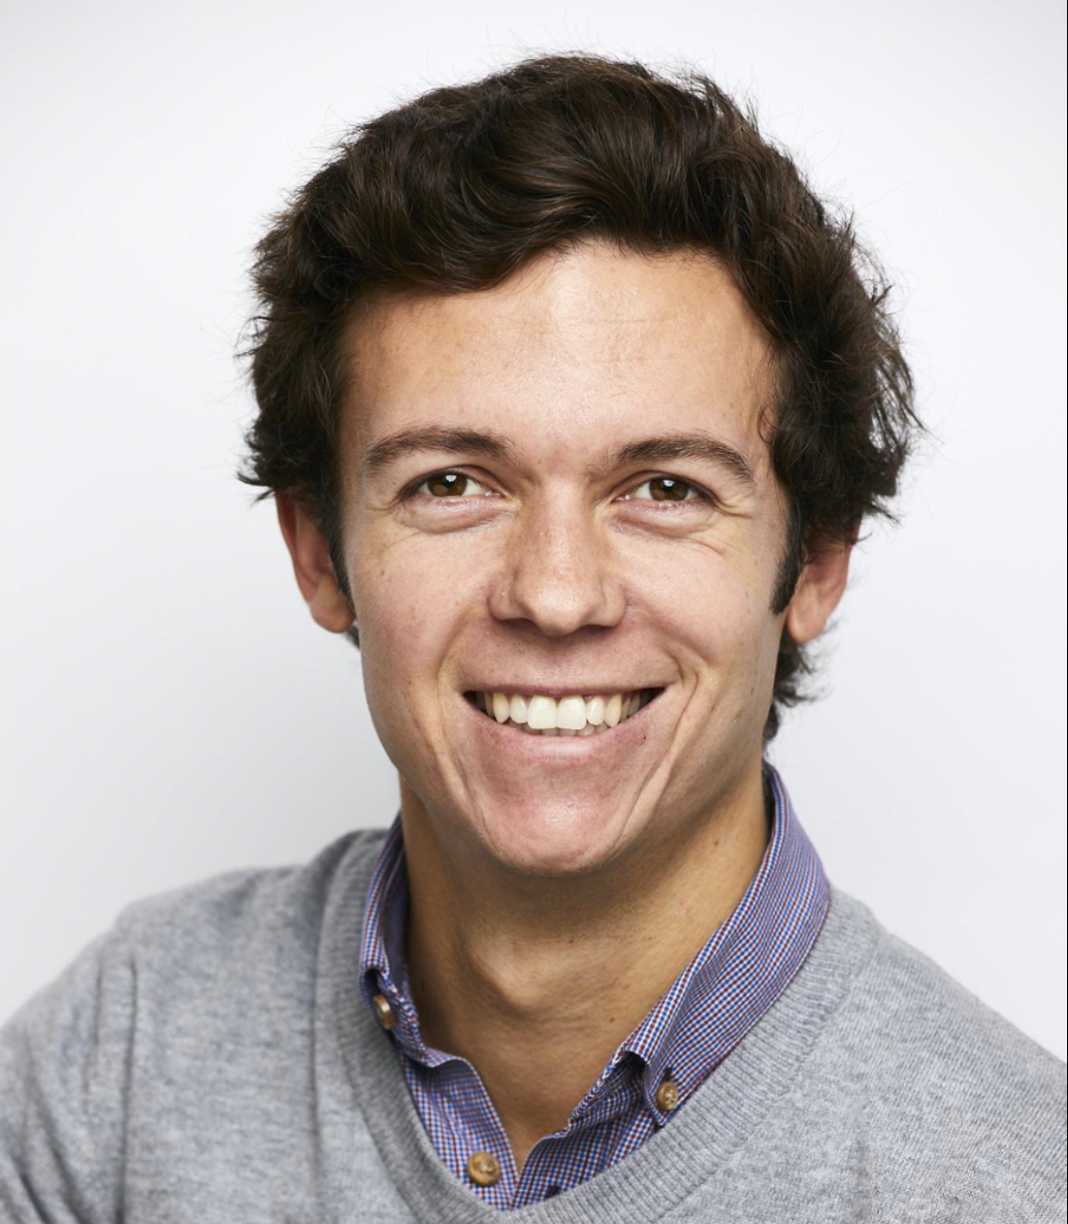 Benjamin Pipat, co-founder and CEO of Seelk, talks about how to build a successful e-commerce business